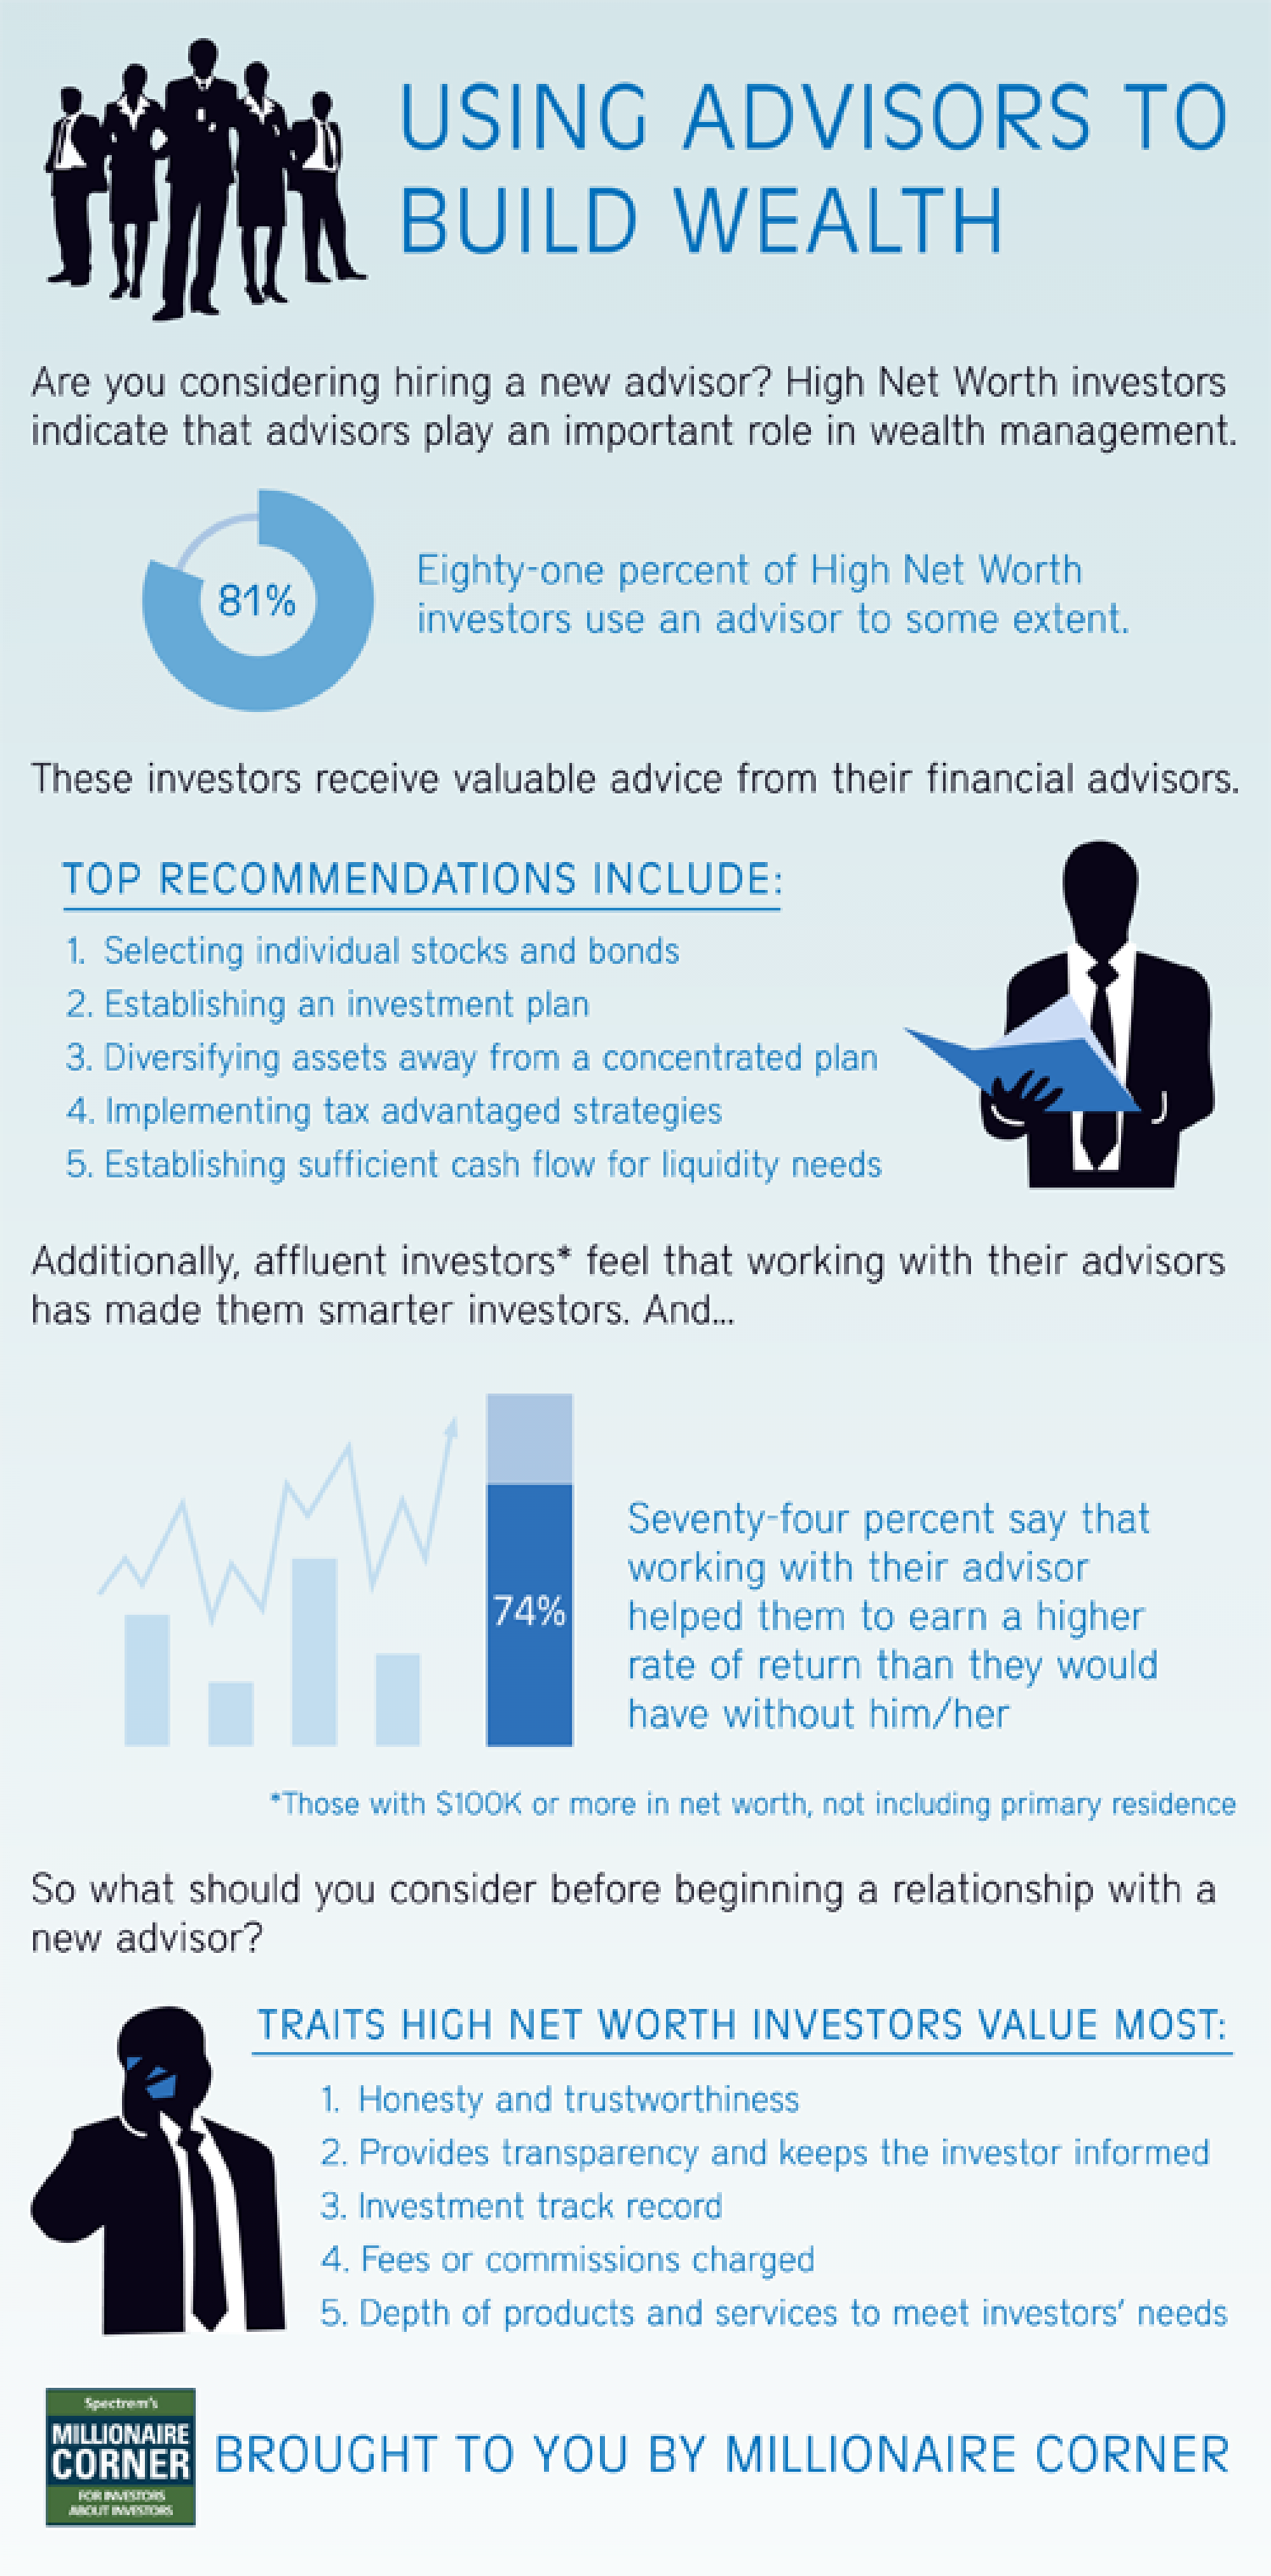 Using Advisors to Build Wealth Infographic